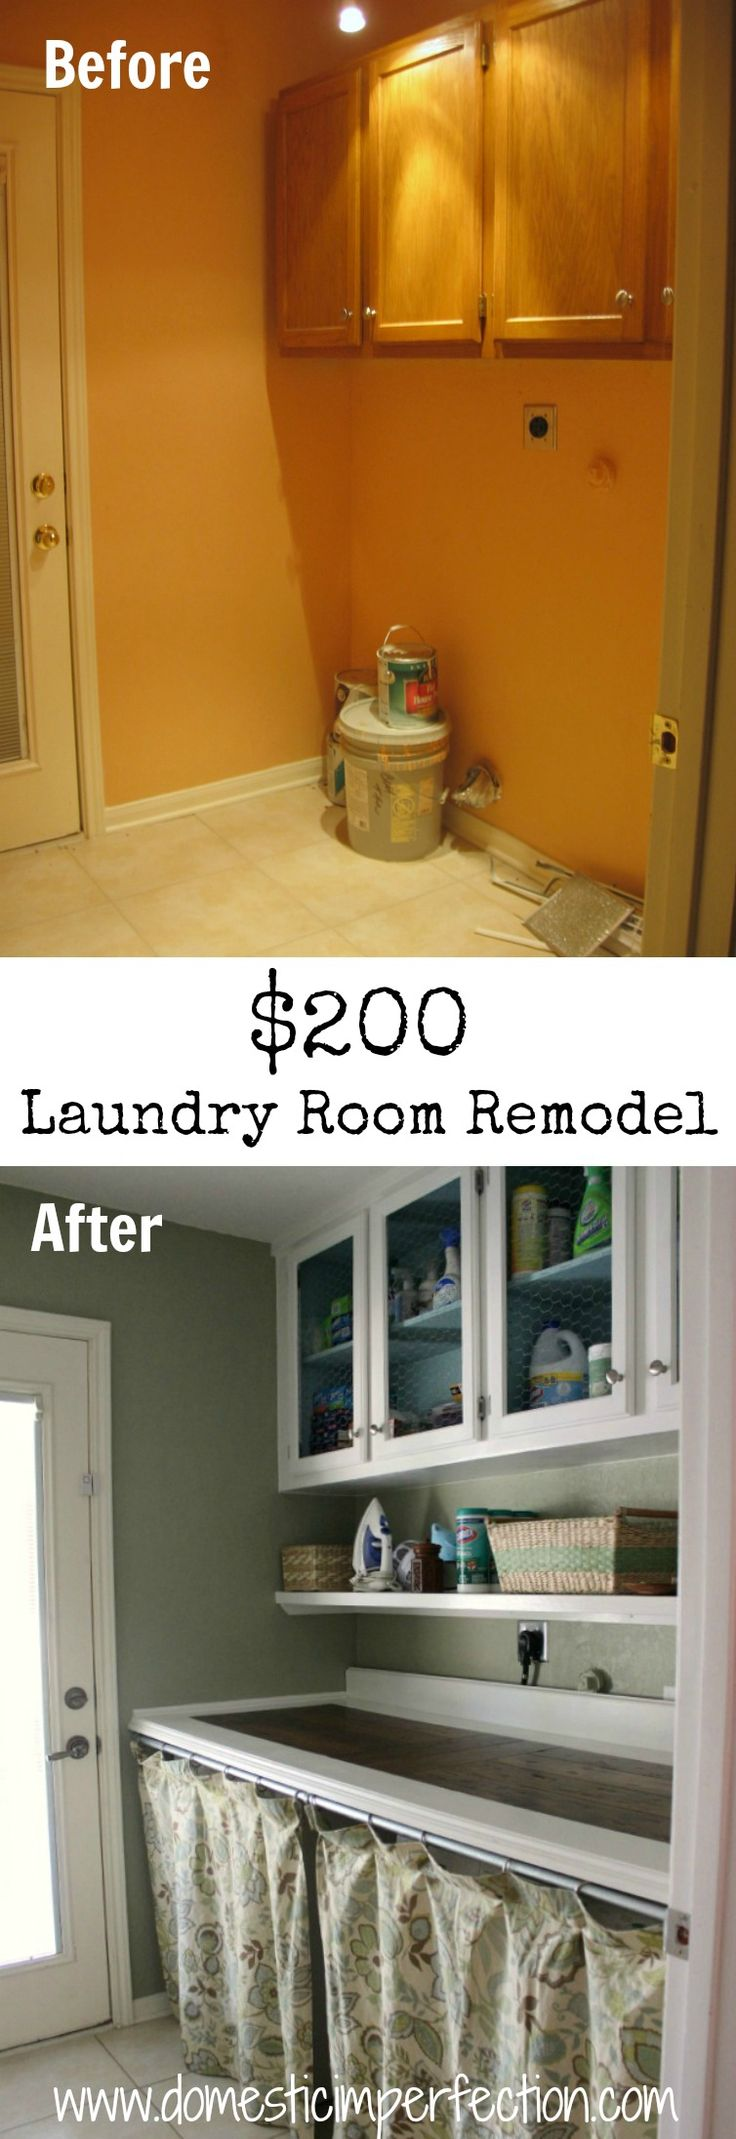 Great ideas for remodeling on a budget and using what you have